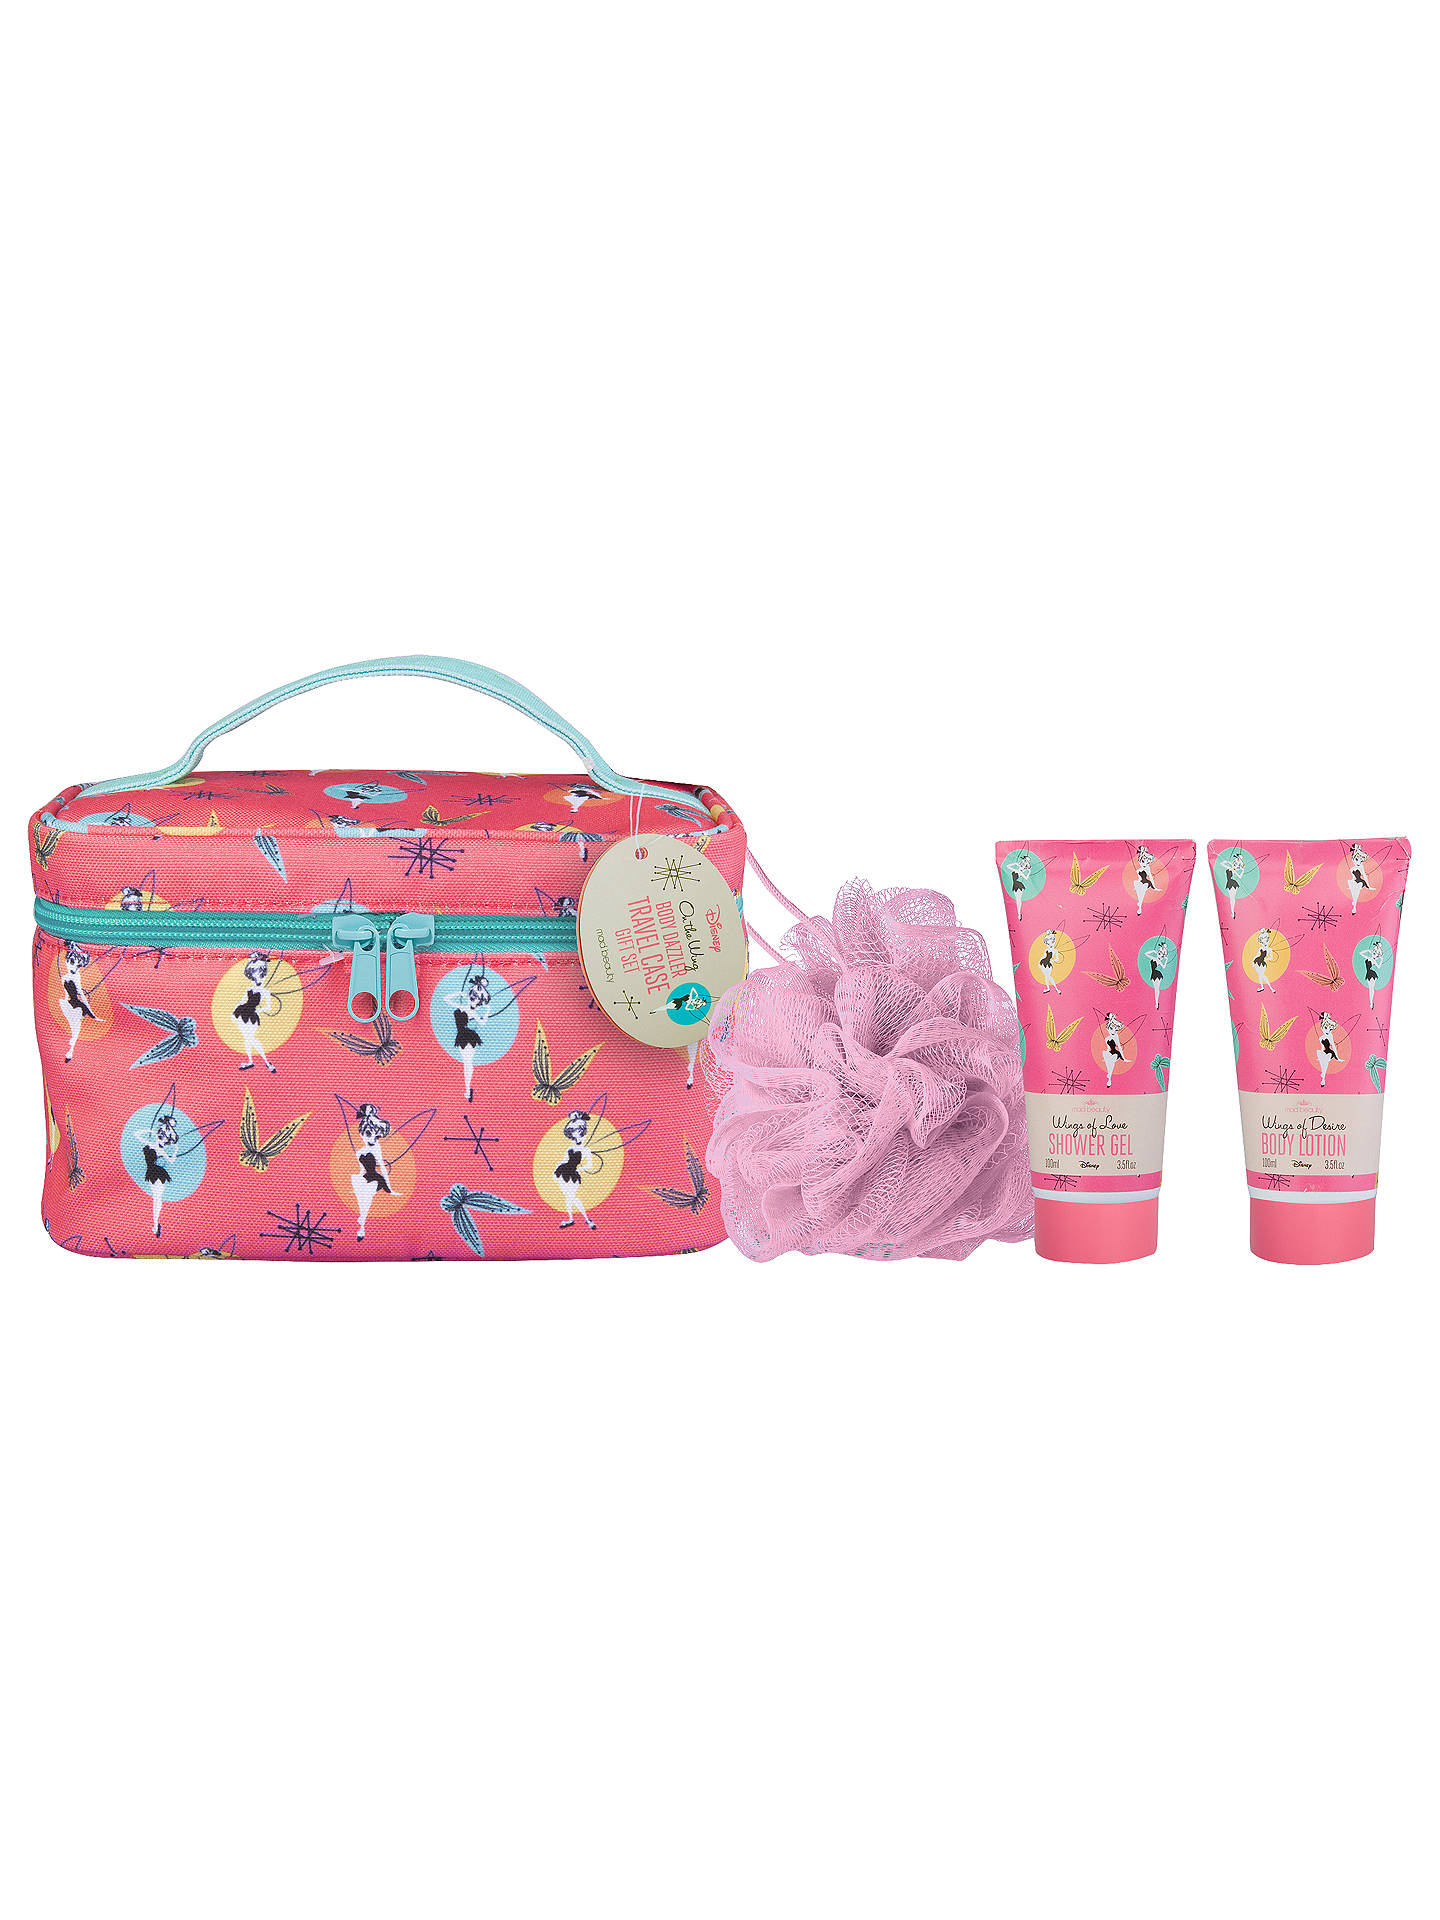 Mad Beauty Disney Tinkerbell Travel Gift Set at John Lewis & Partners